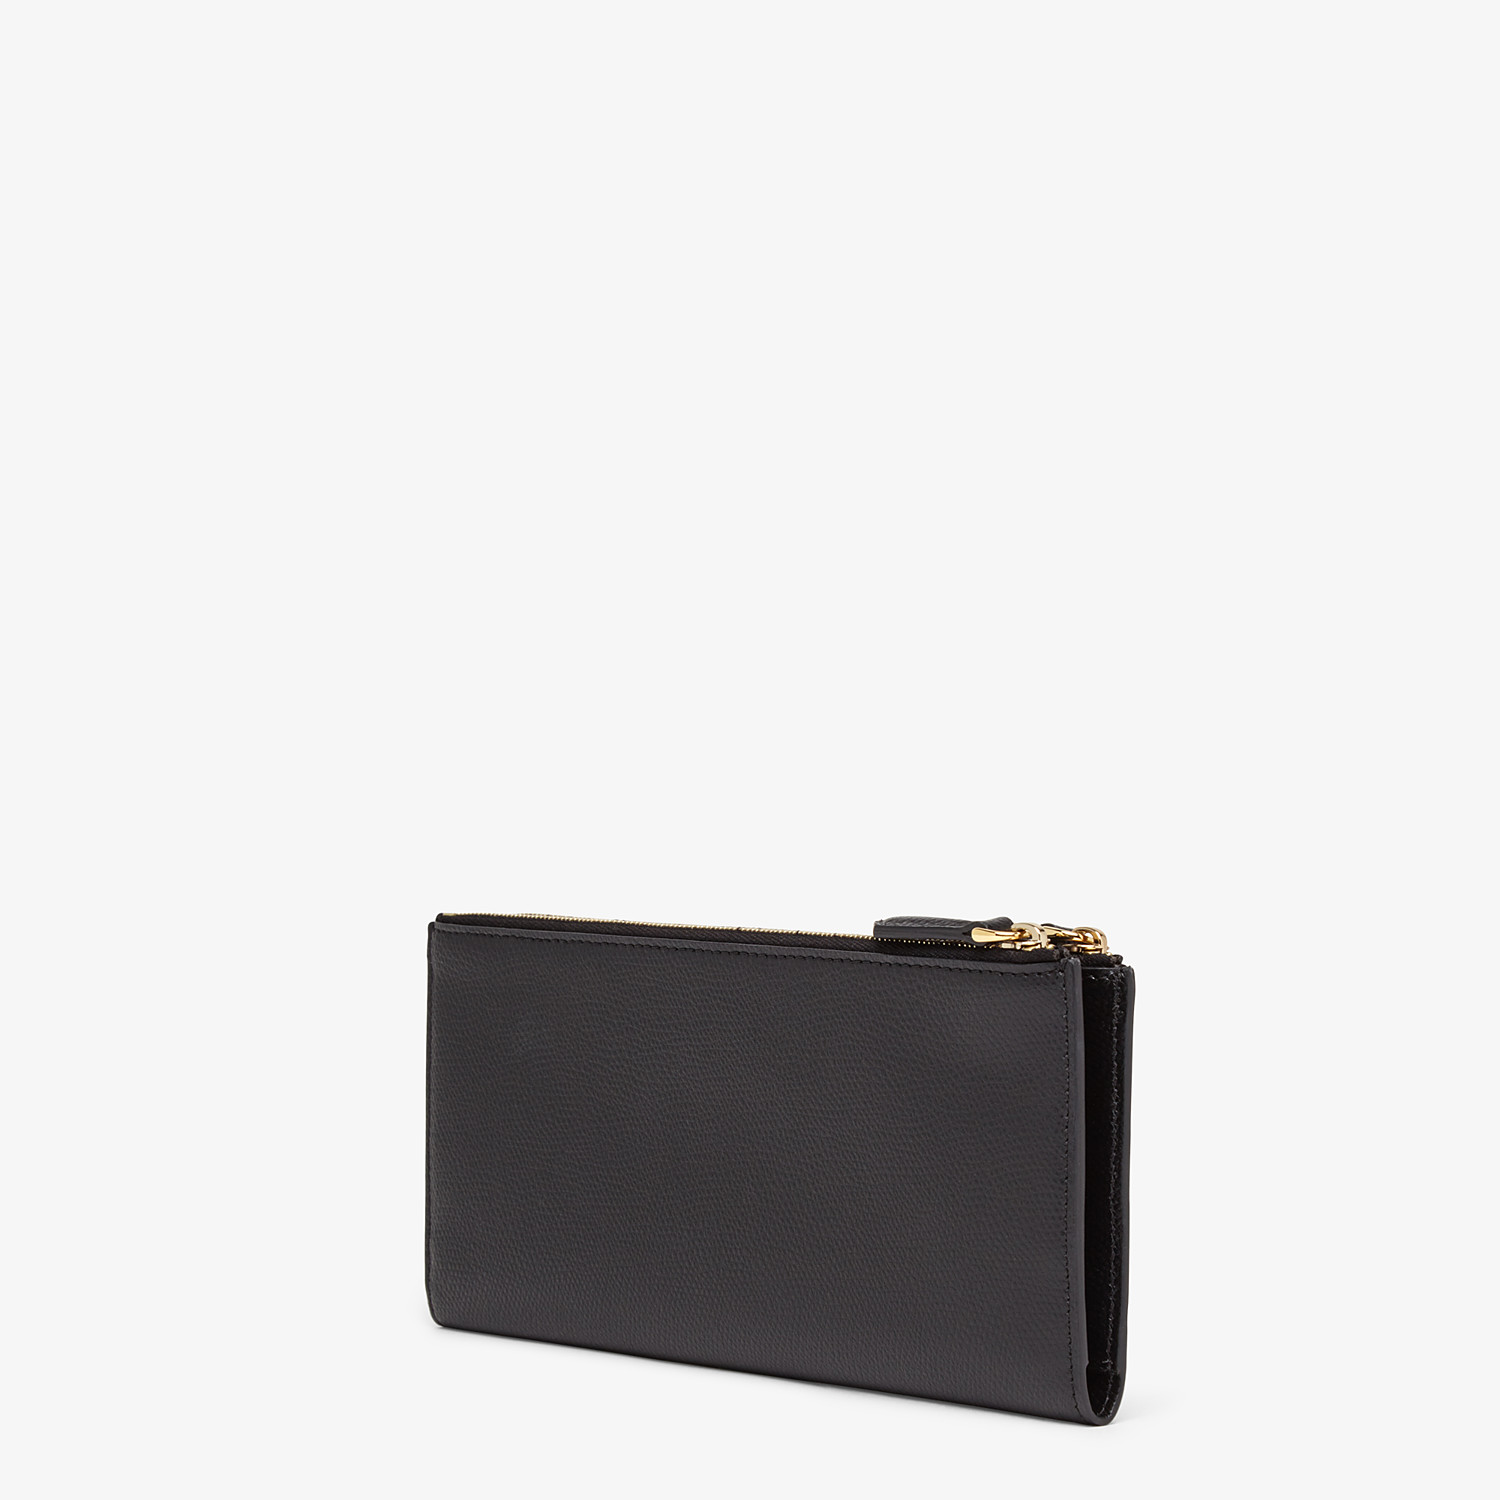 FENDI BIFOLD - Black leather wallet - view 2 detail